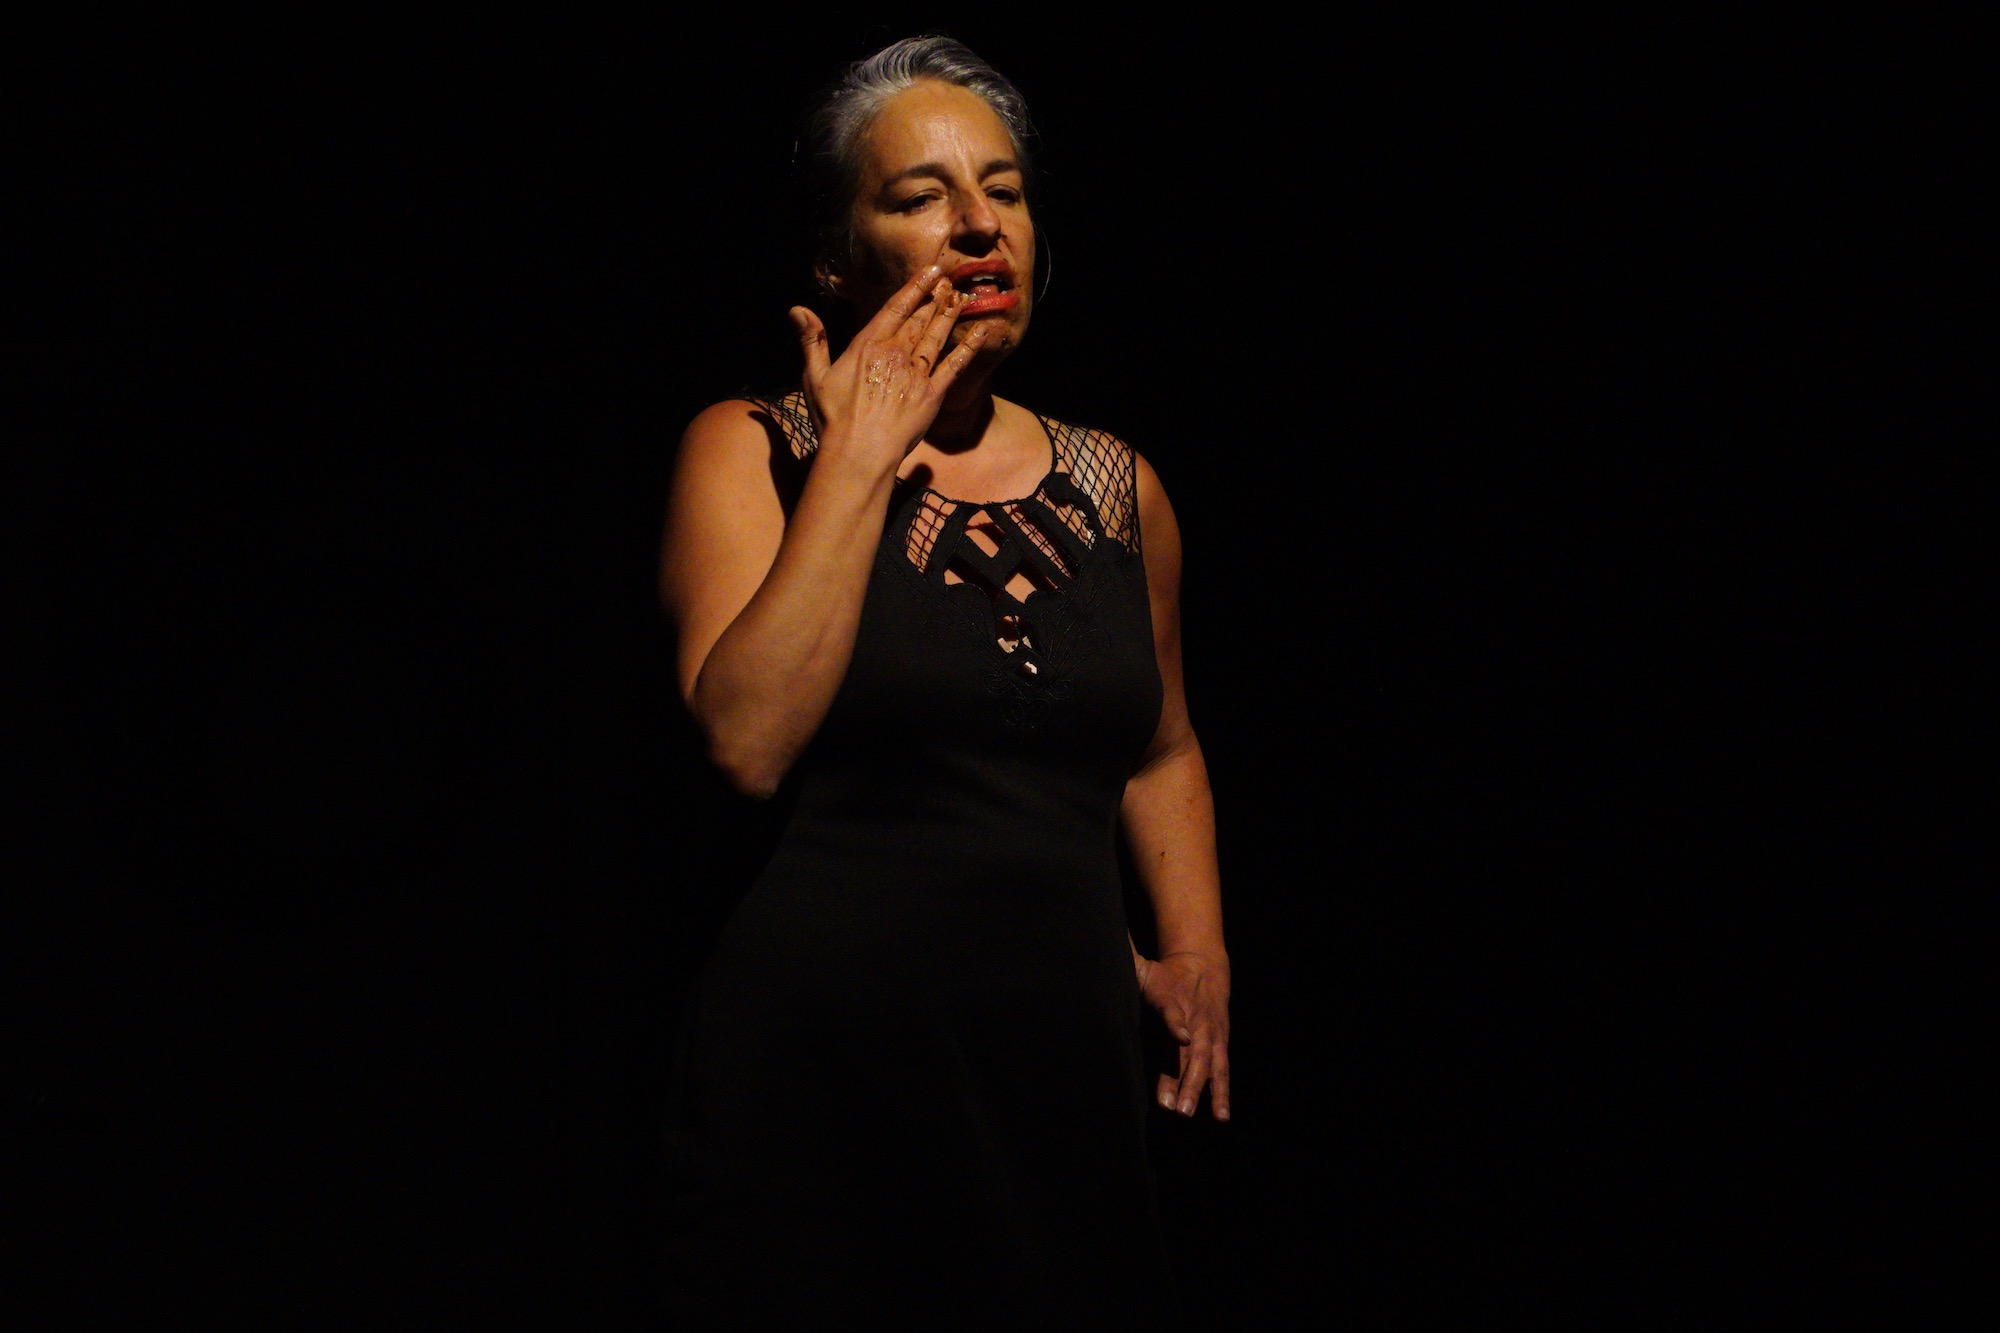 Performer Praba Pilar in a black dress and grey hair standing against a black background touching her mouth which is open and smeared.